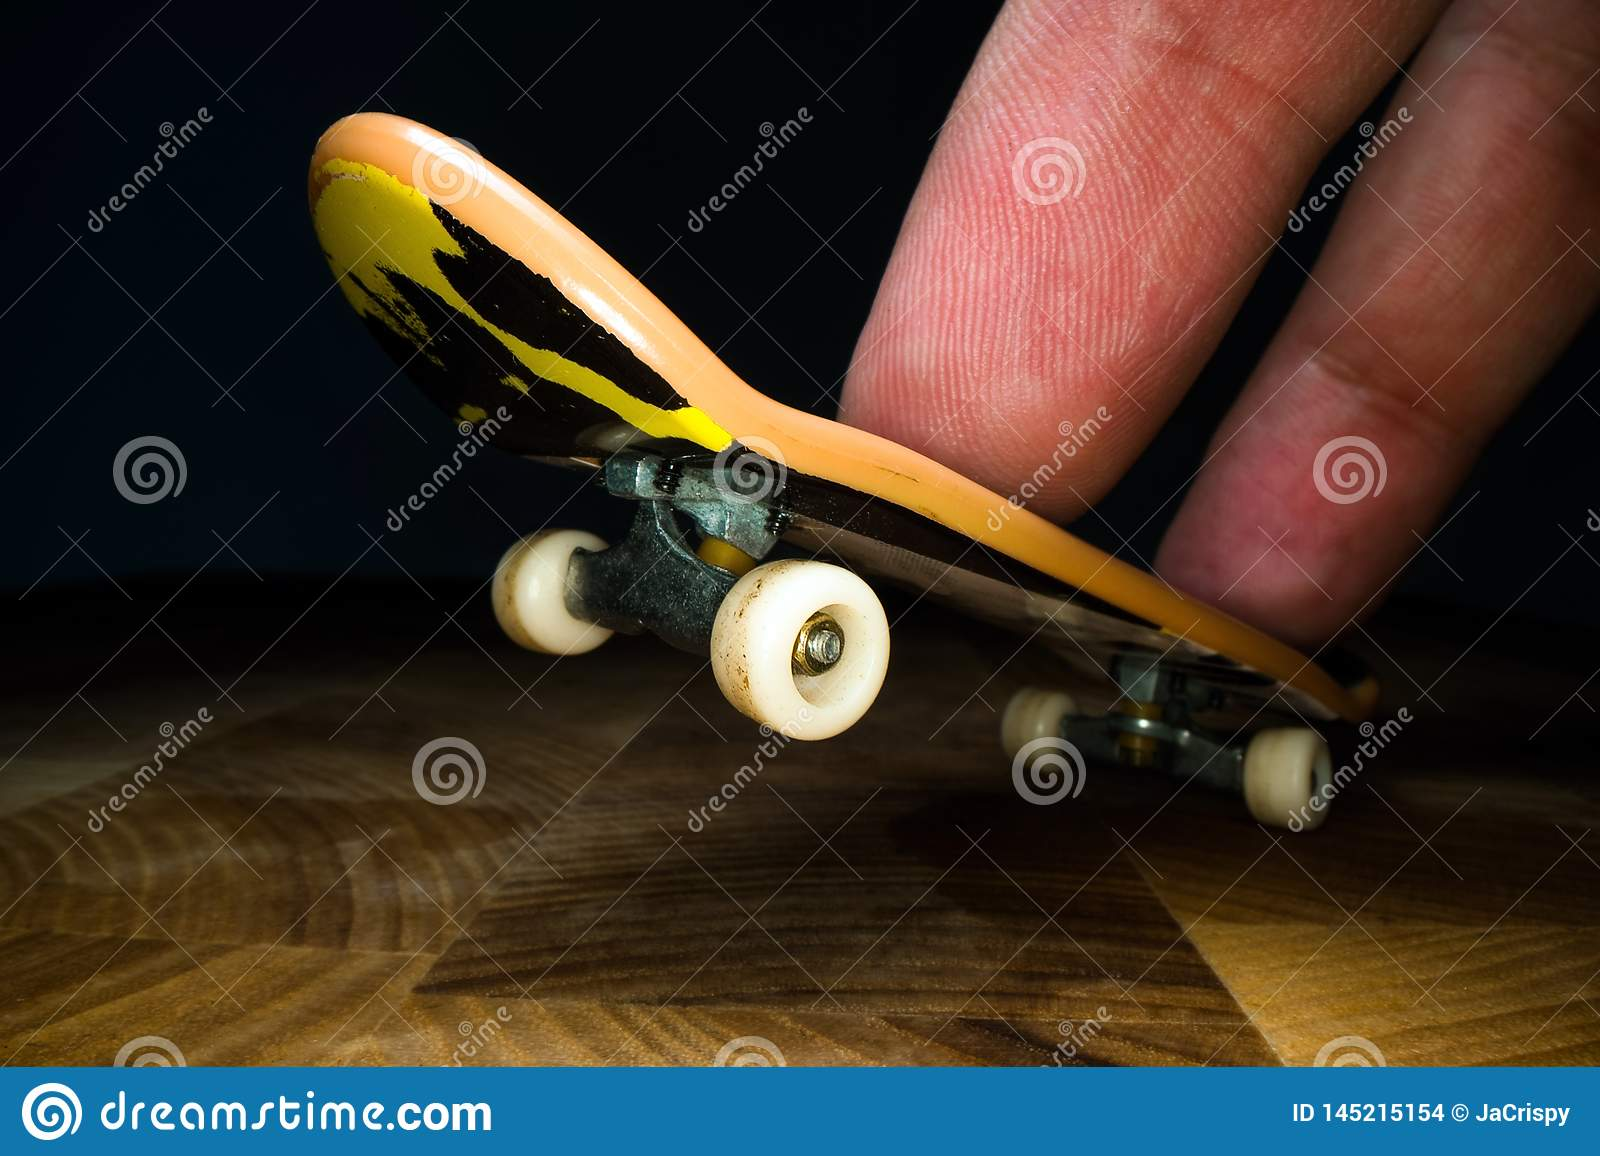 Fingerboard. A small skateboard for kids and teenagers to play with hand fingers. Youth culture, extreme sport